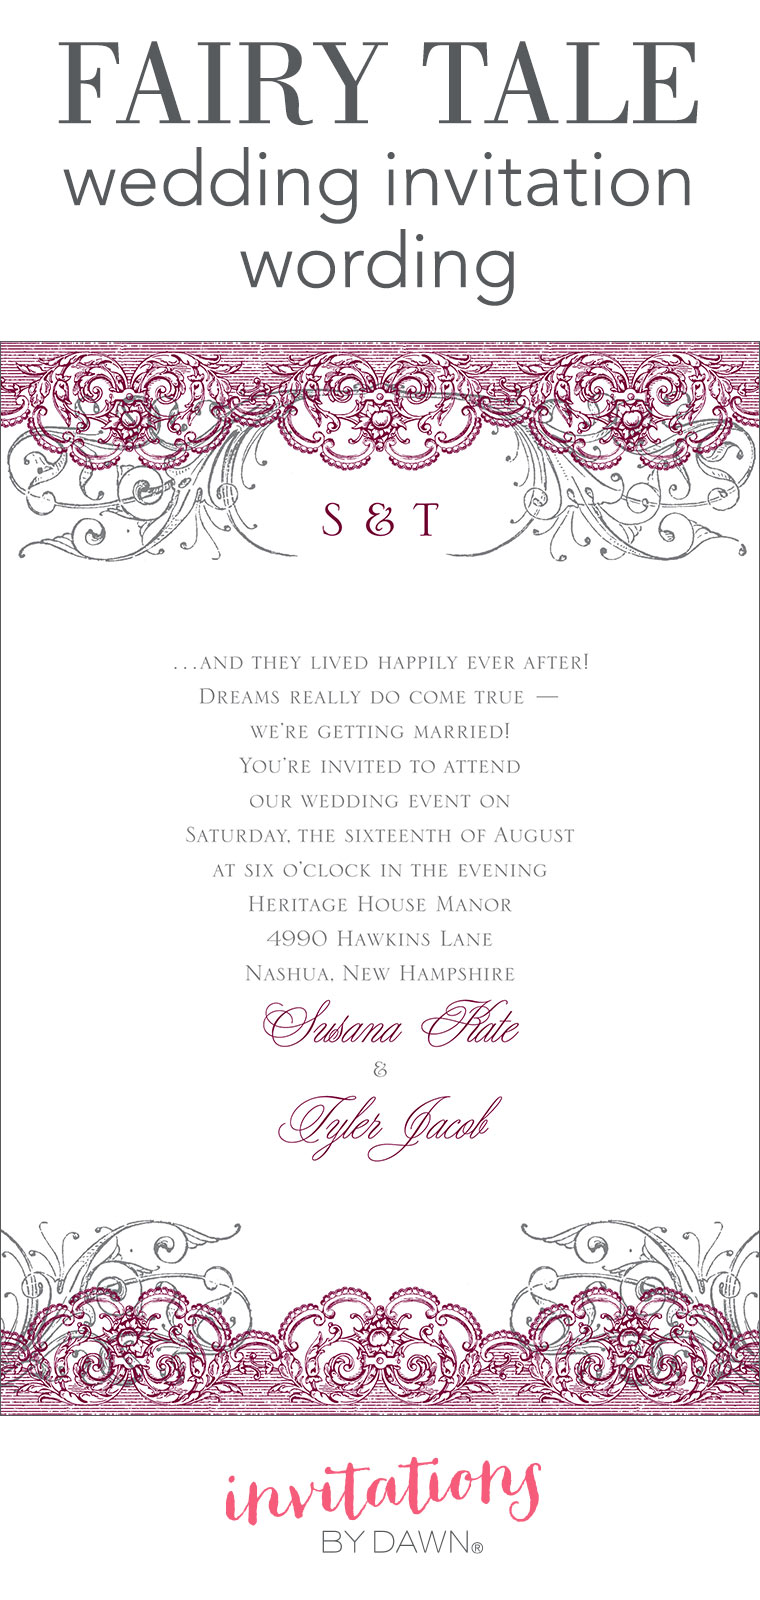 Fairy tale wedding invitation wording invitations by dawn stopboris Image collections